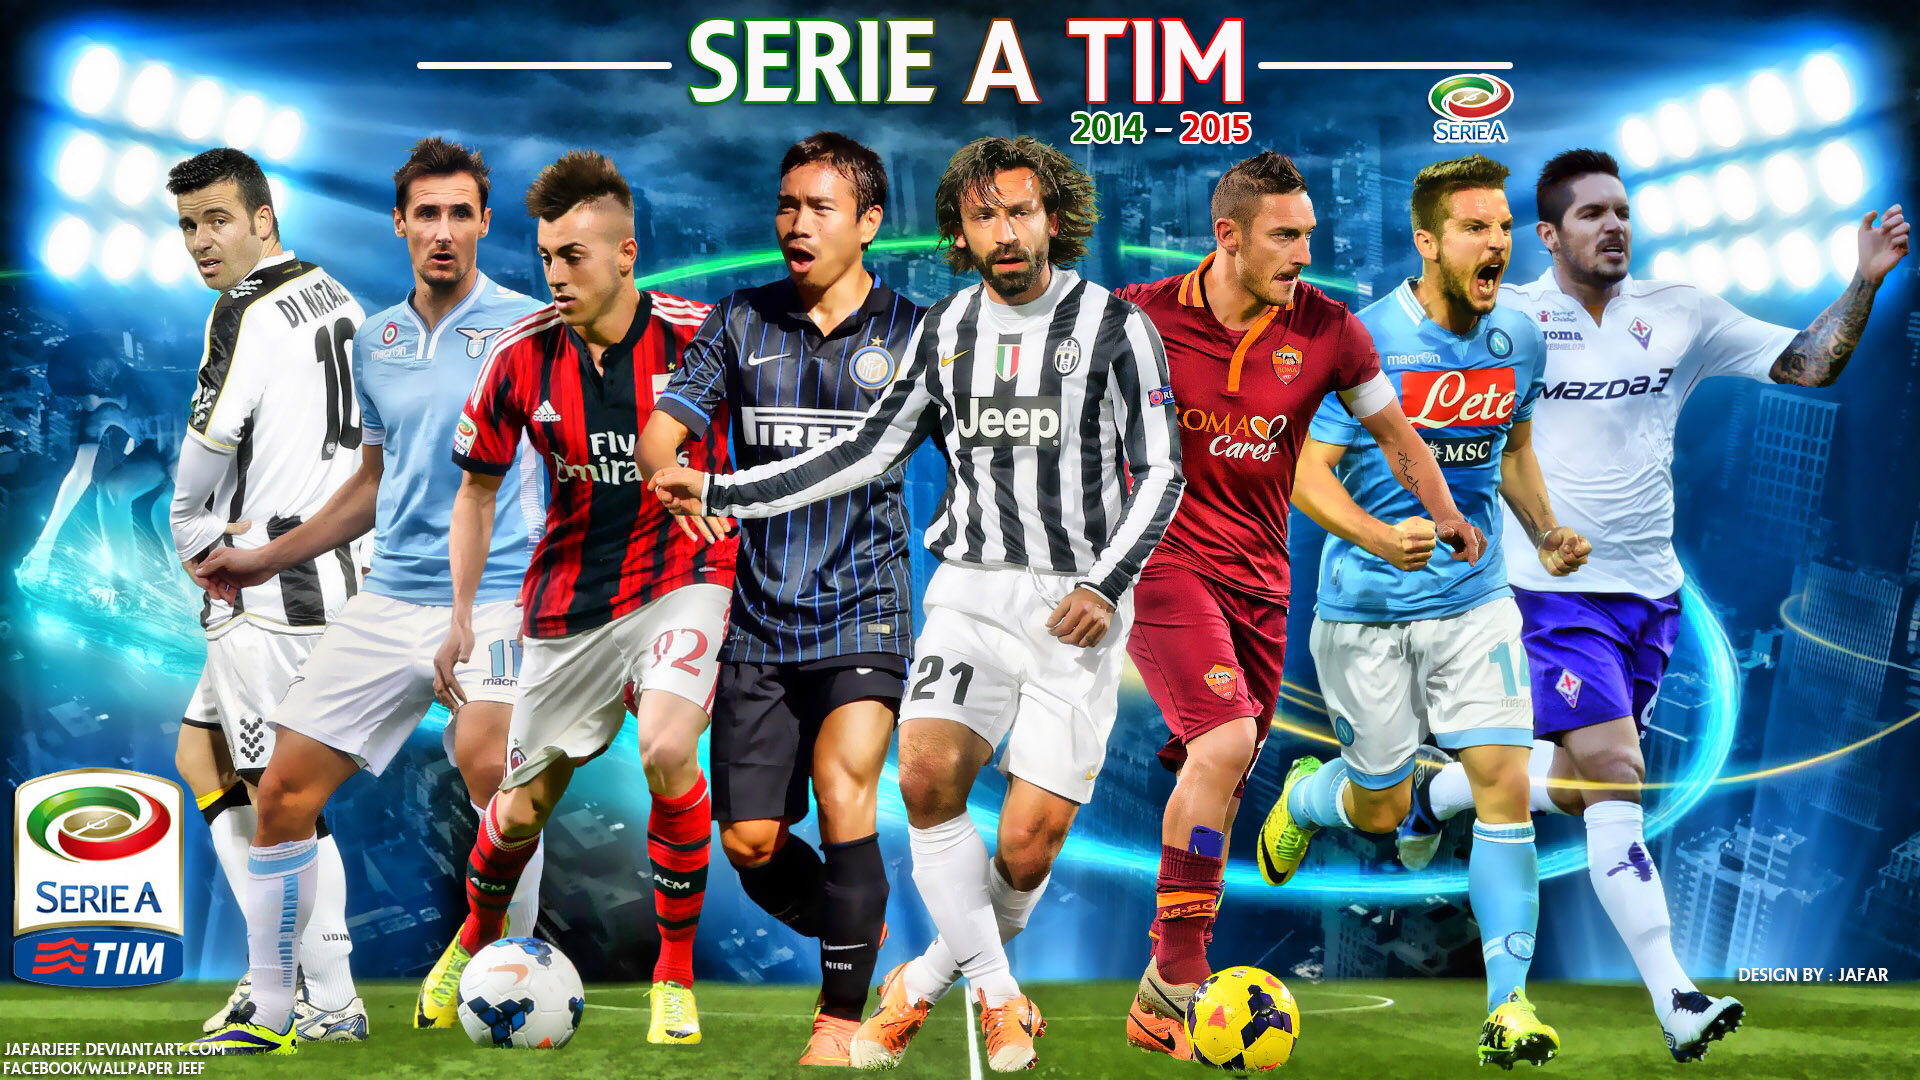 Serie-A-TIM-2014-2015-Football-Stars-Wallpaper